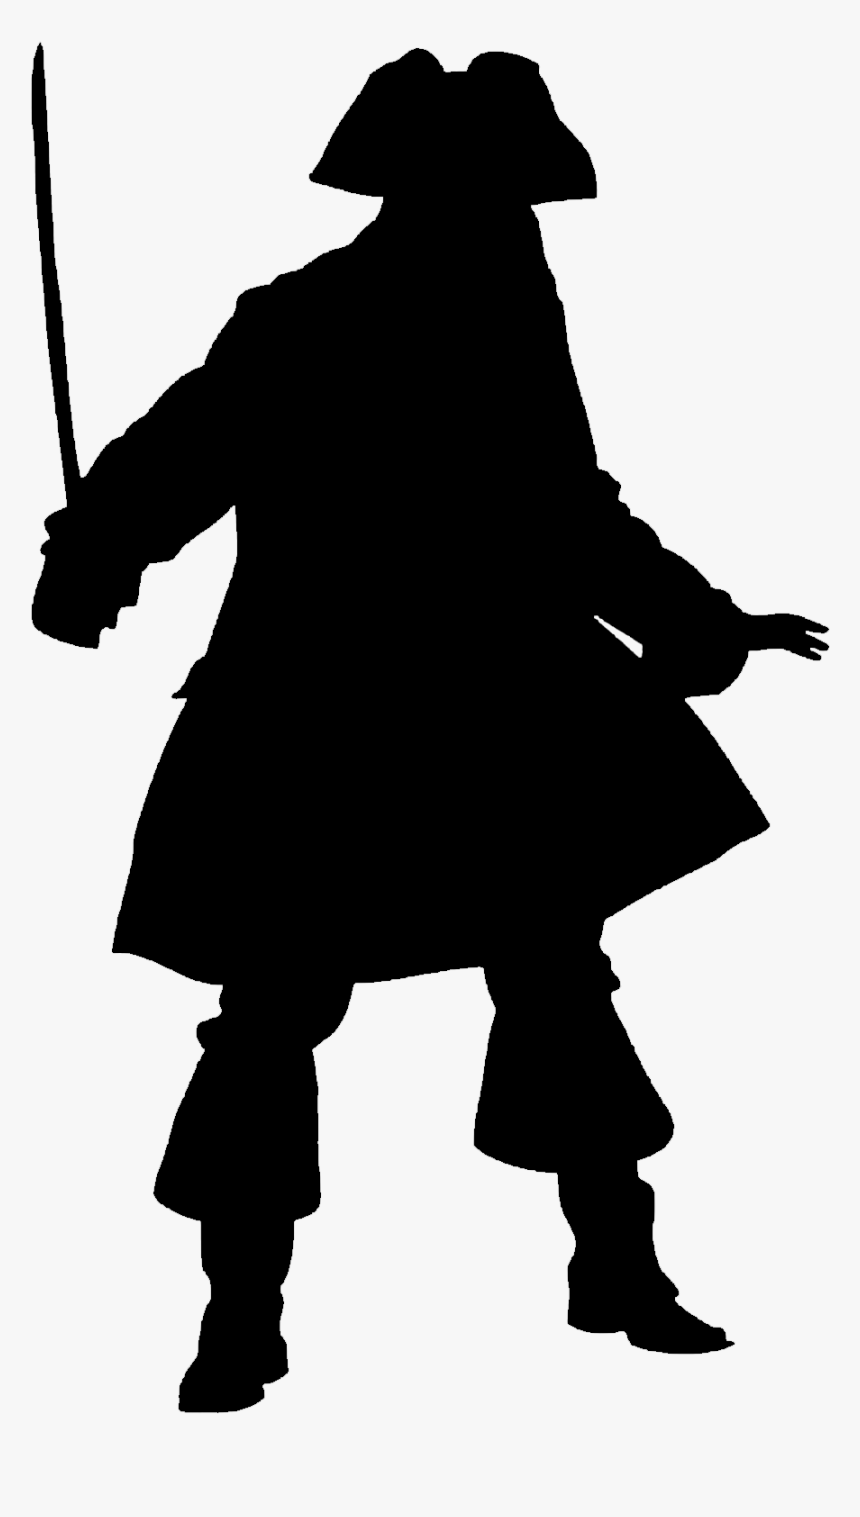 Transparent Sword Silhouette Png - Captain Jack Sparrow Costume, Png Download, Free Download